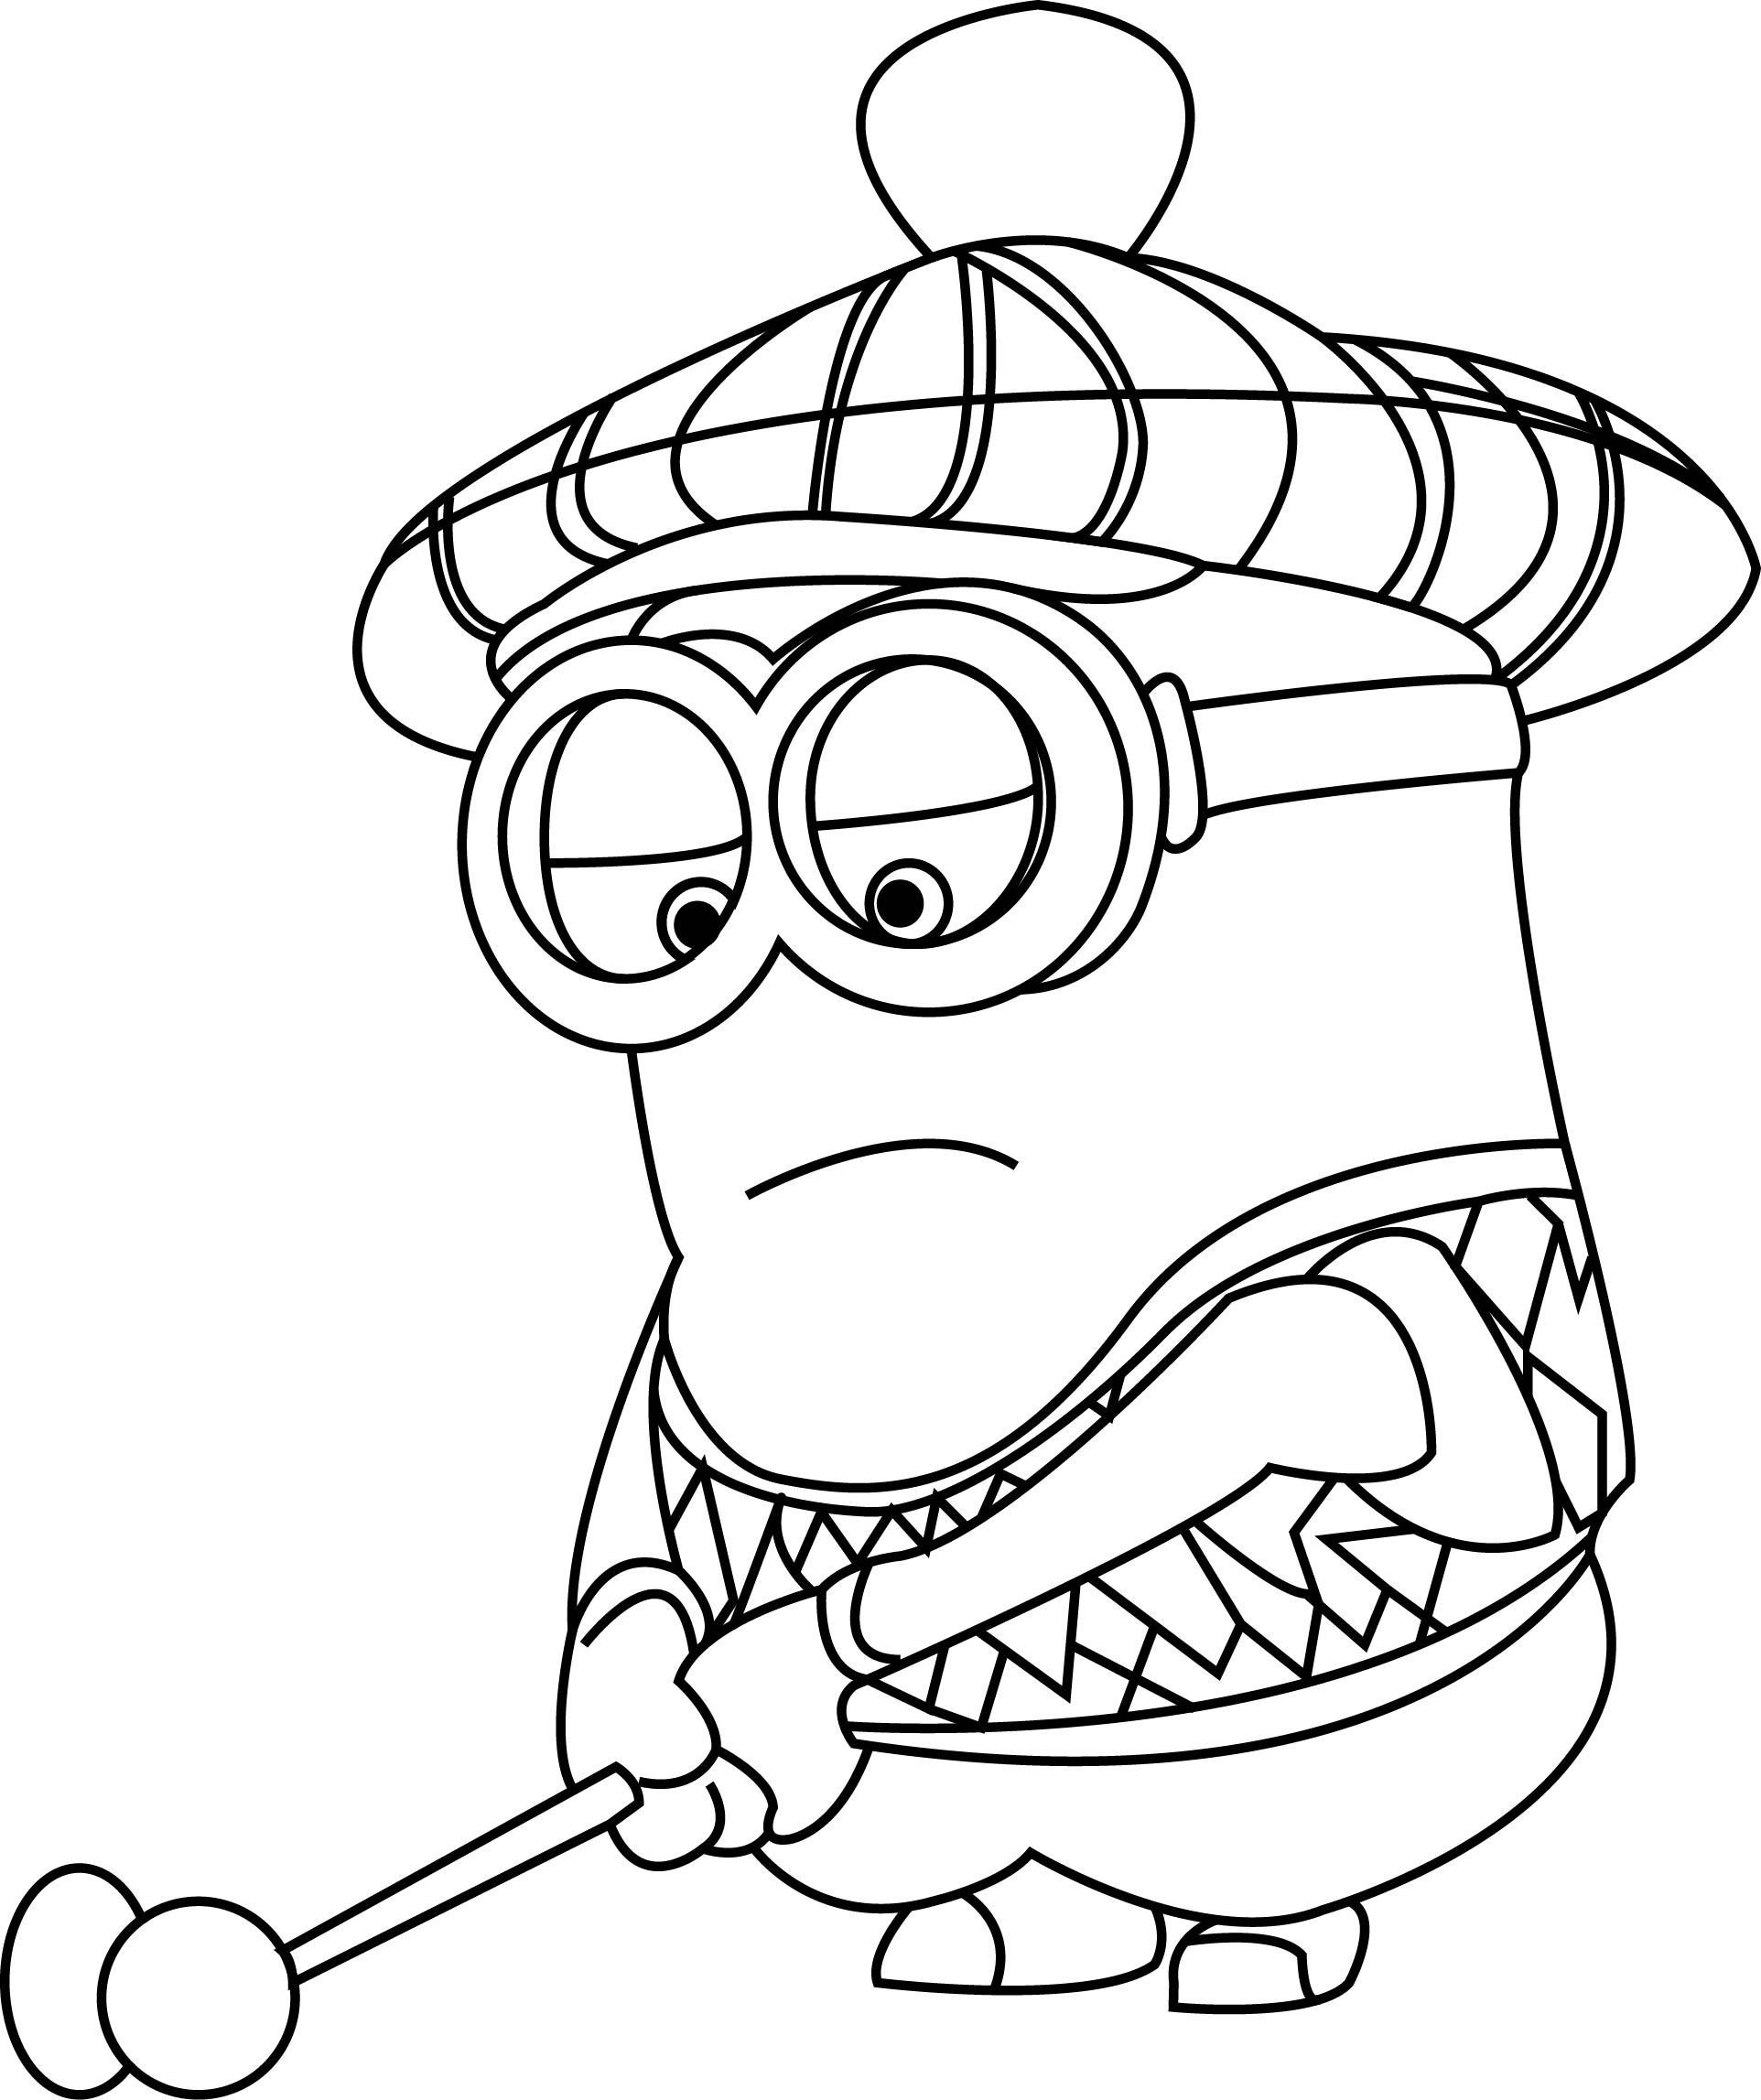 Despicable-Me-Golfer-Coloring-Page